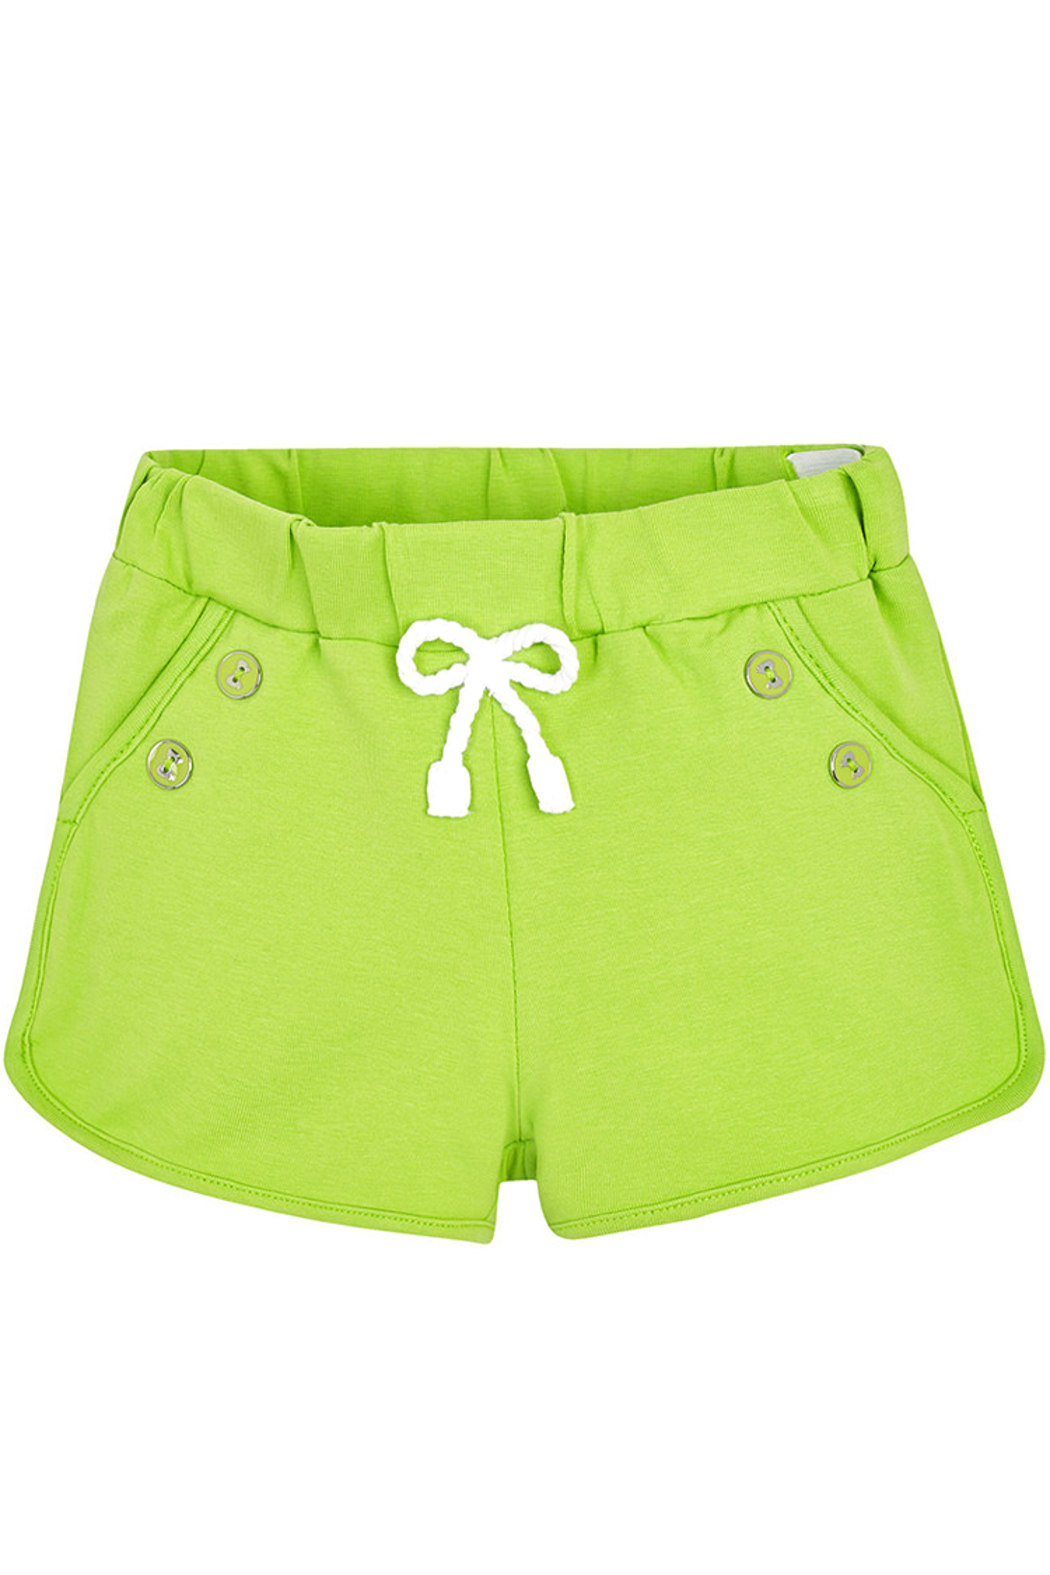 Mayoral Pistachio Knit Shorts - Front Cropped Image